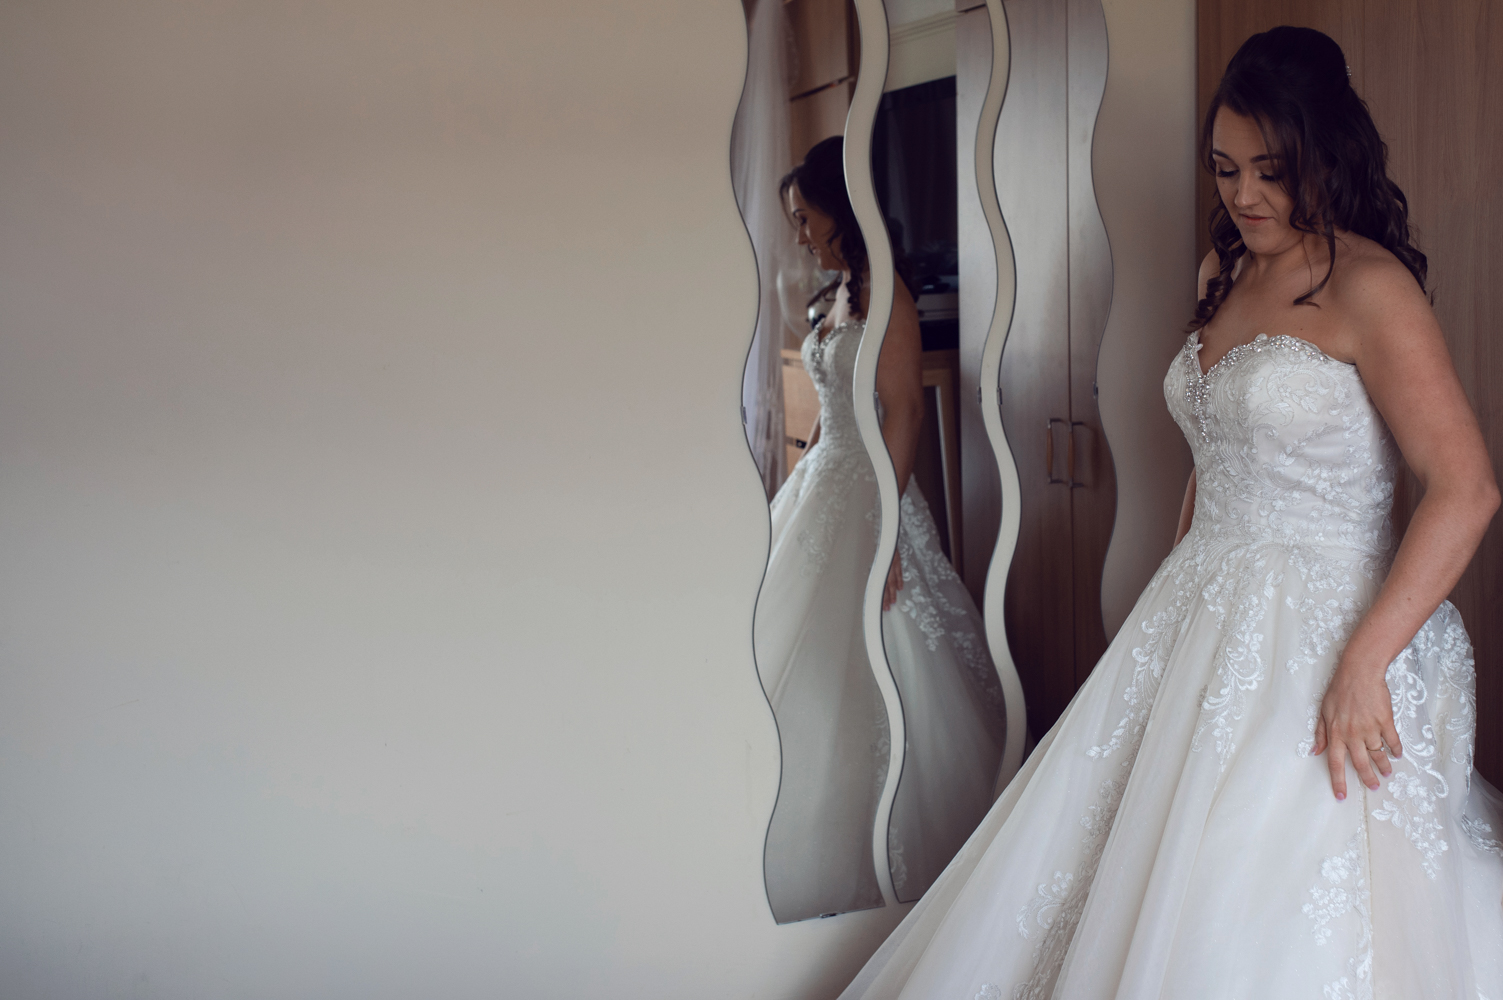 Photo of the bride in the quirky wall mirror